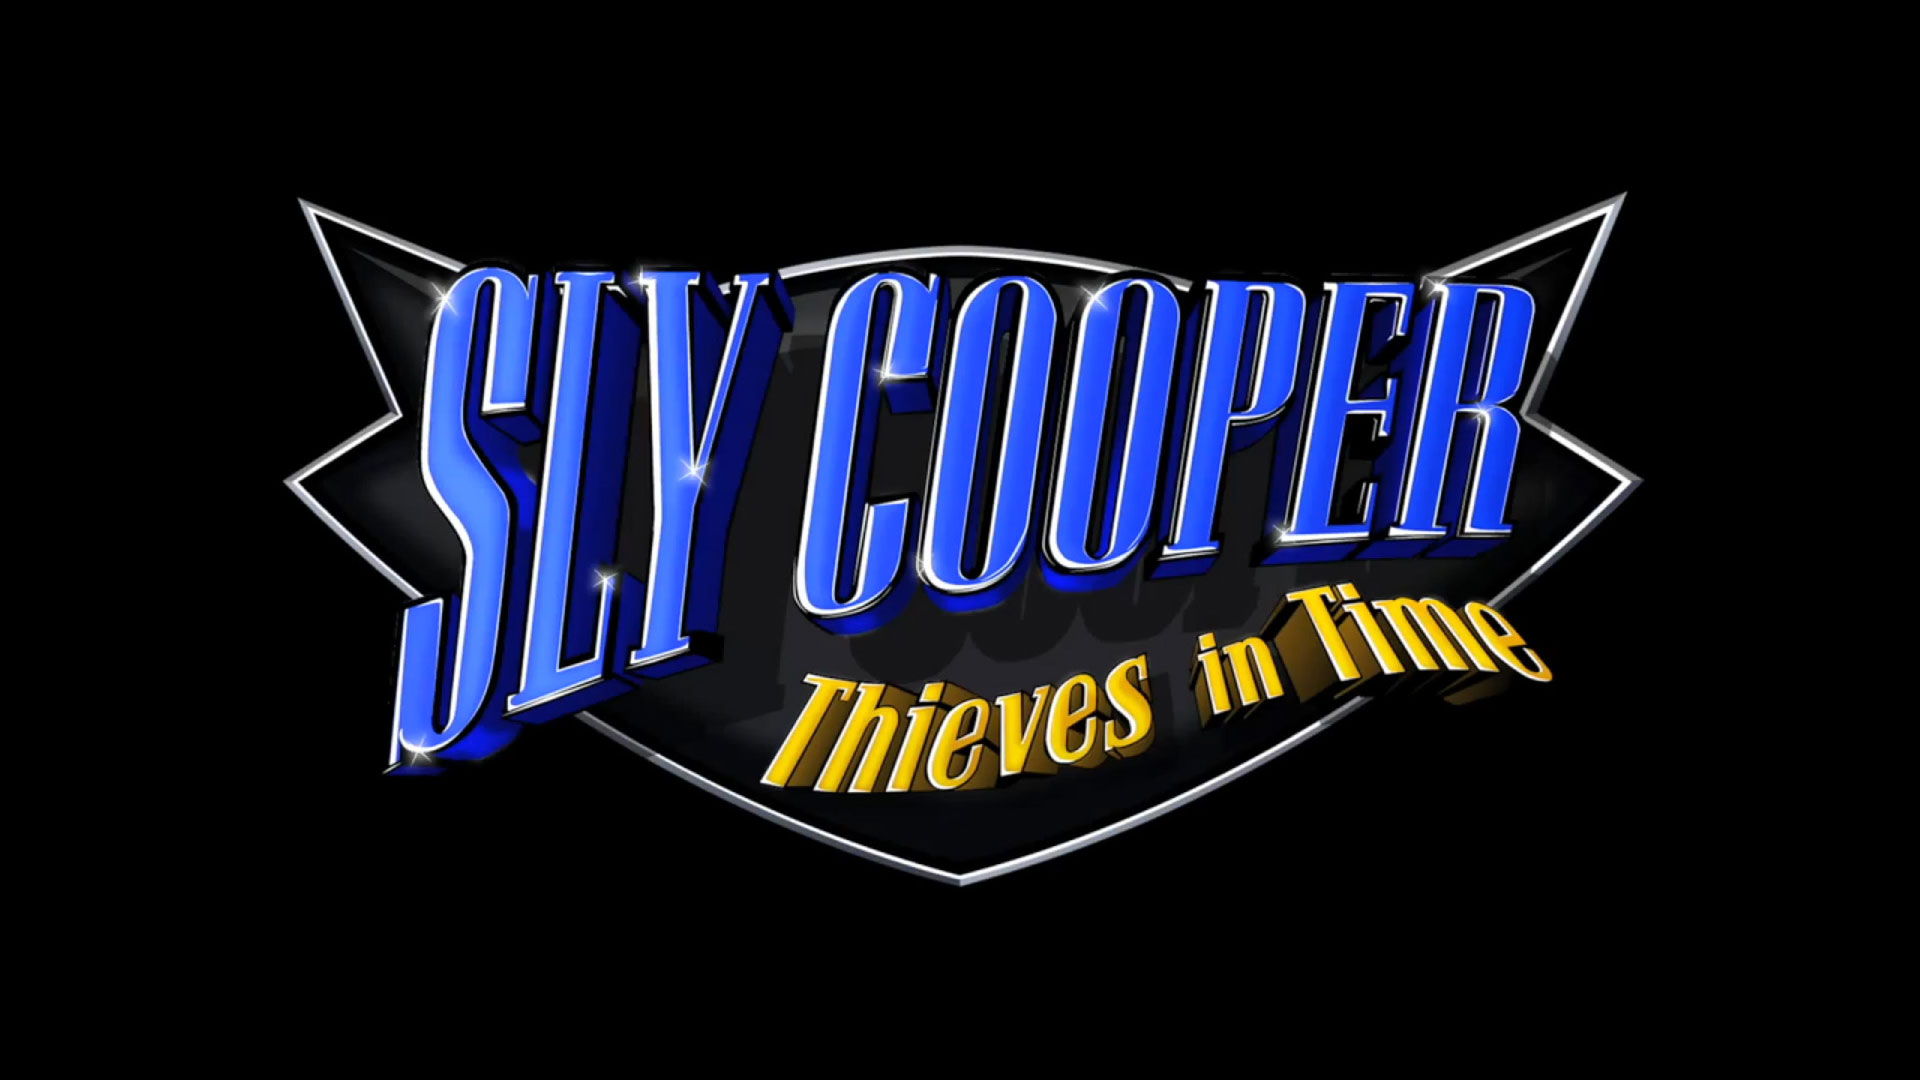 Sly Cooper Thieves in Time Wallpapers in HD 1920x1080